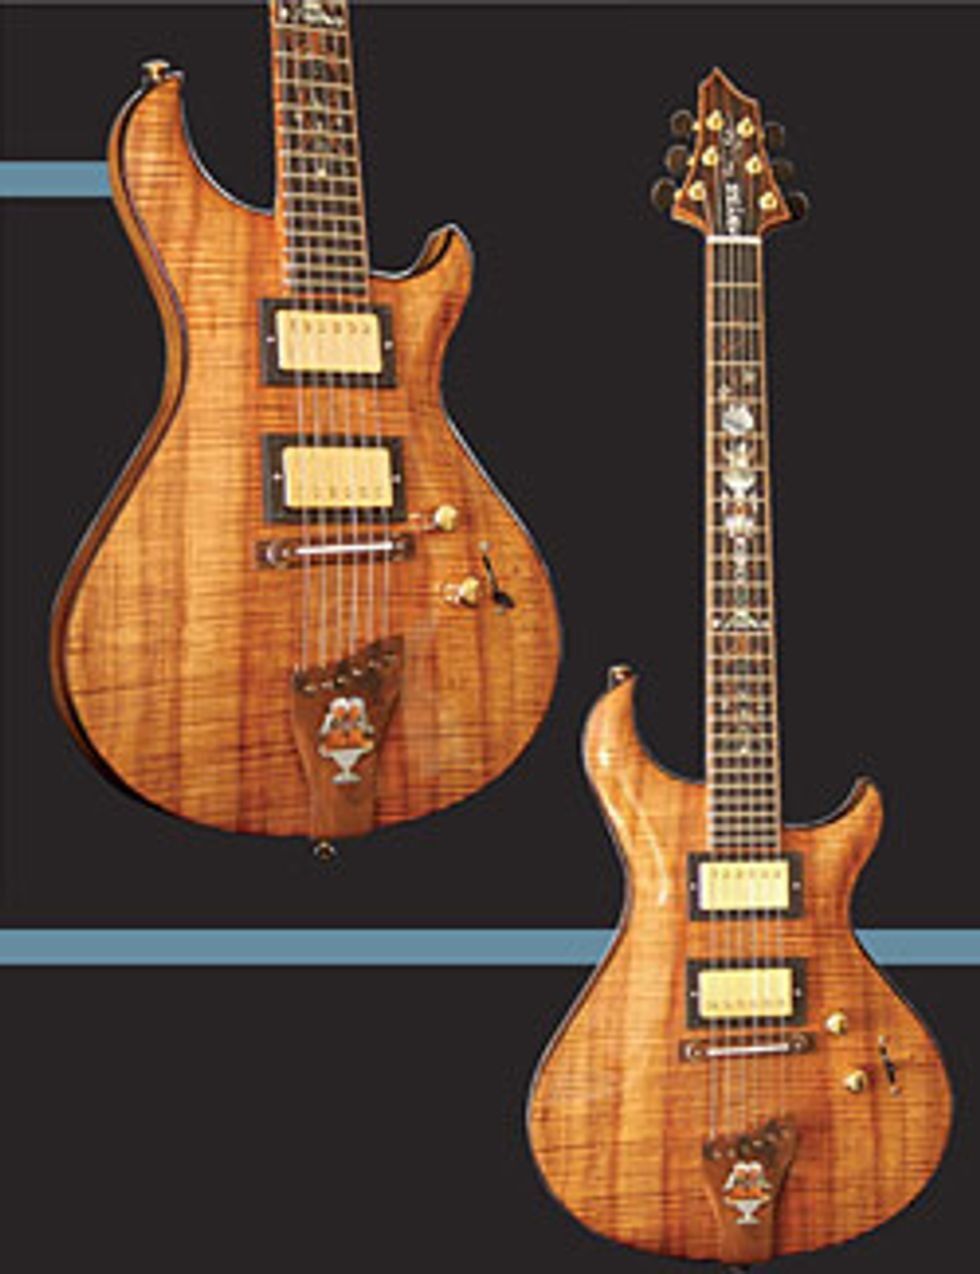 Abyss Guitars